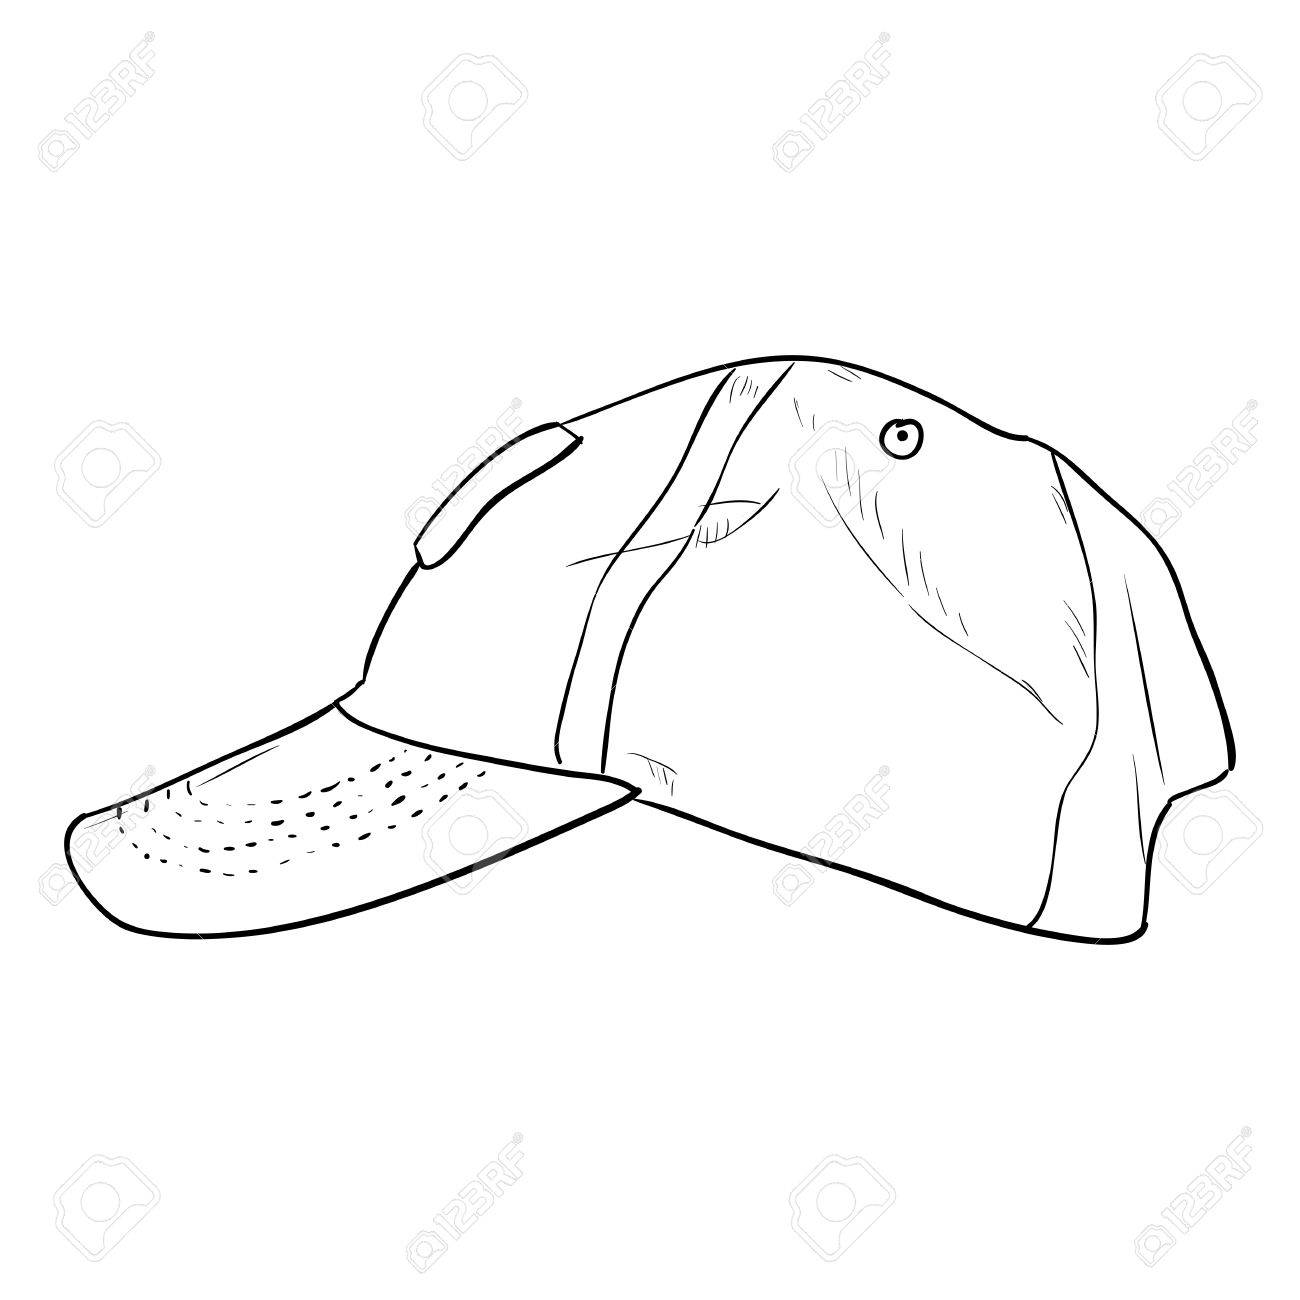 vector sketch cap template hand draw illustration royalty free